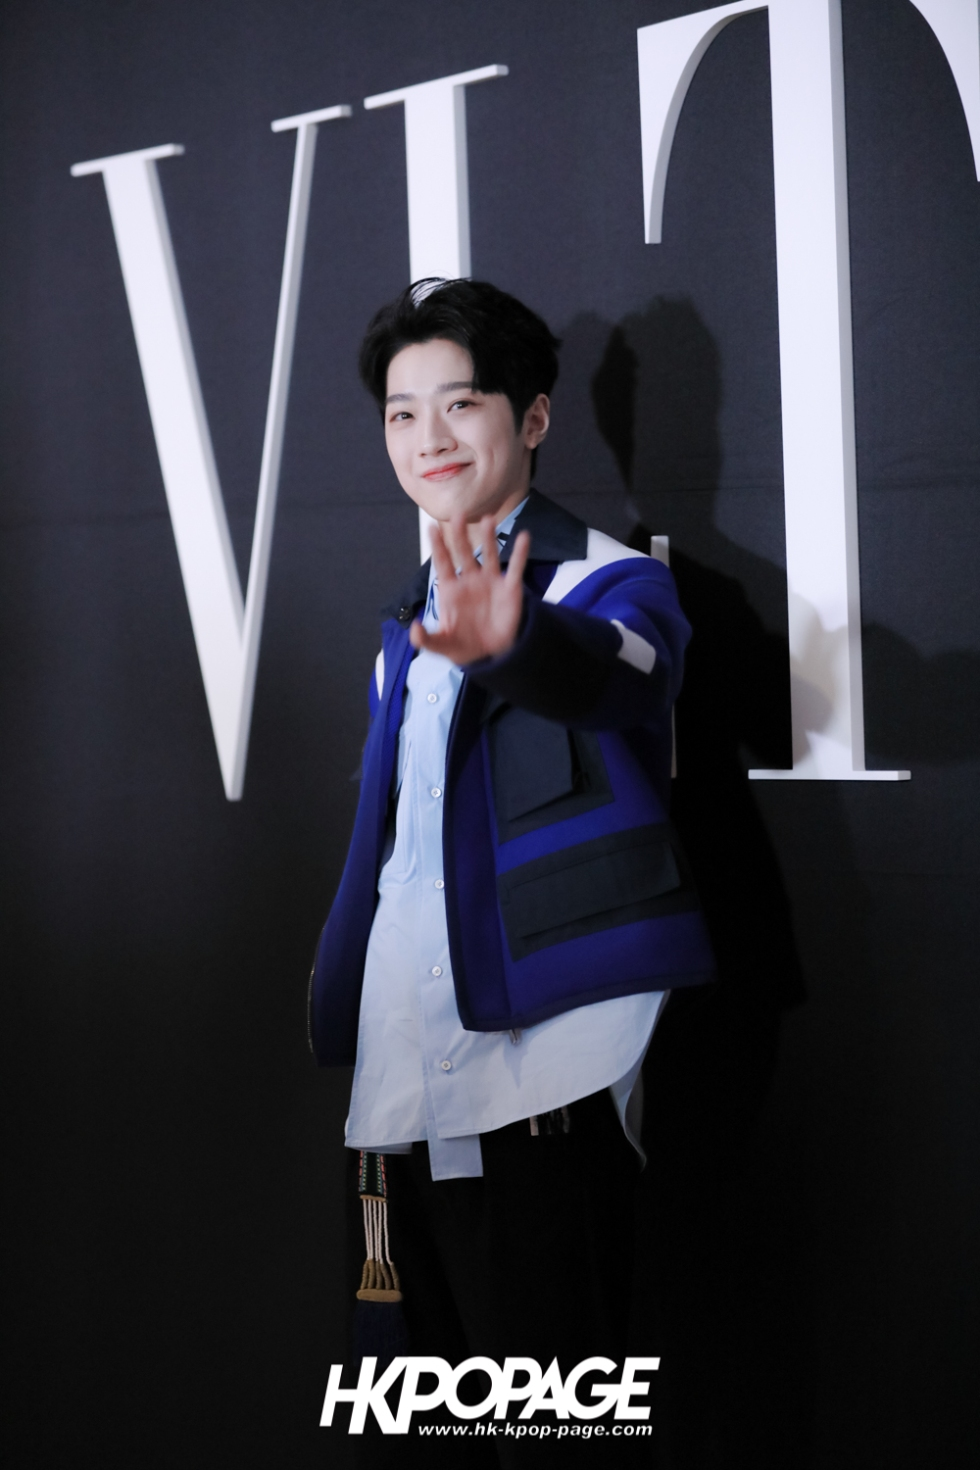 [HK.KPOP.PAGE] 180126_VALENTINO Brand Event_Lai Kuan Lin_03